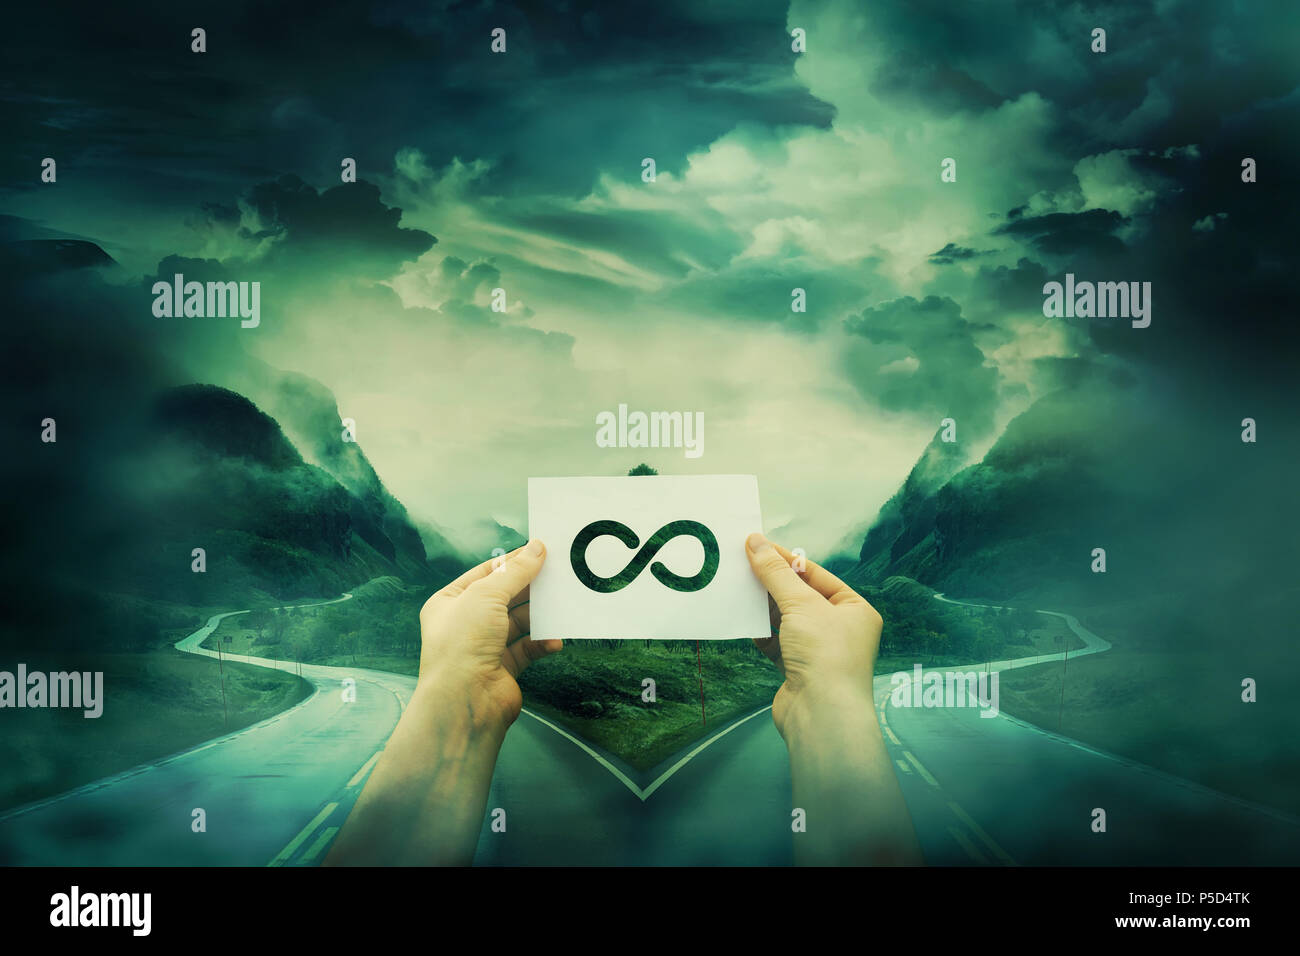 Hands holding a sheet with infinite sign in front of a crossroad, fork junction where road is splitted in two different ways. The infinity choice in l - Stock Image